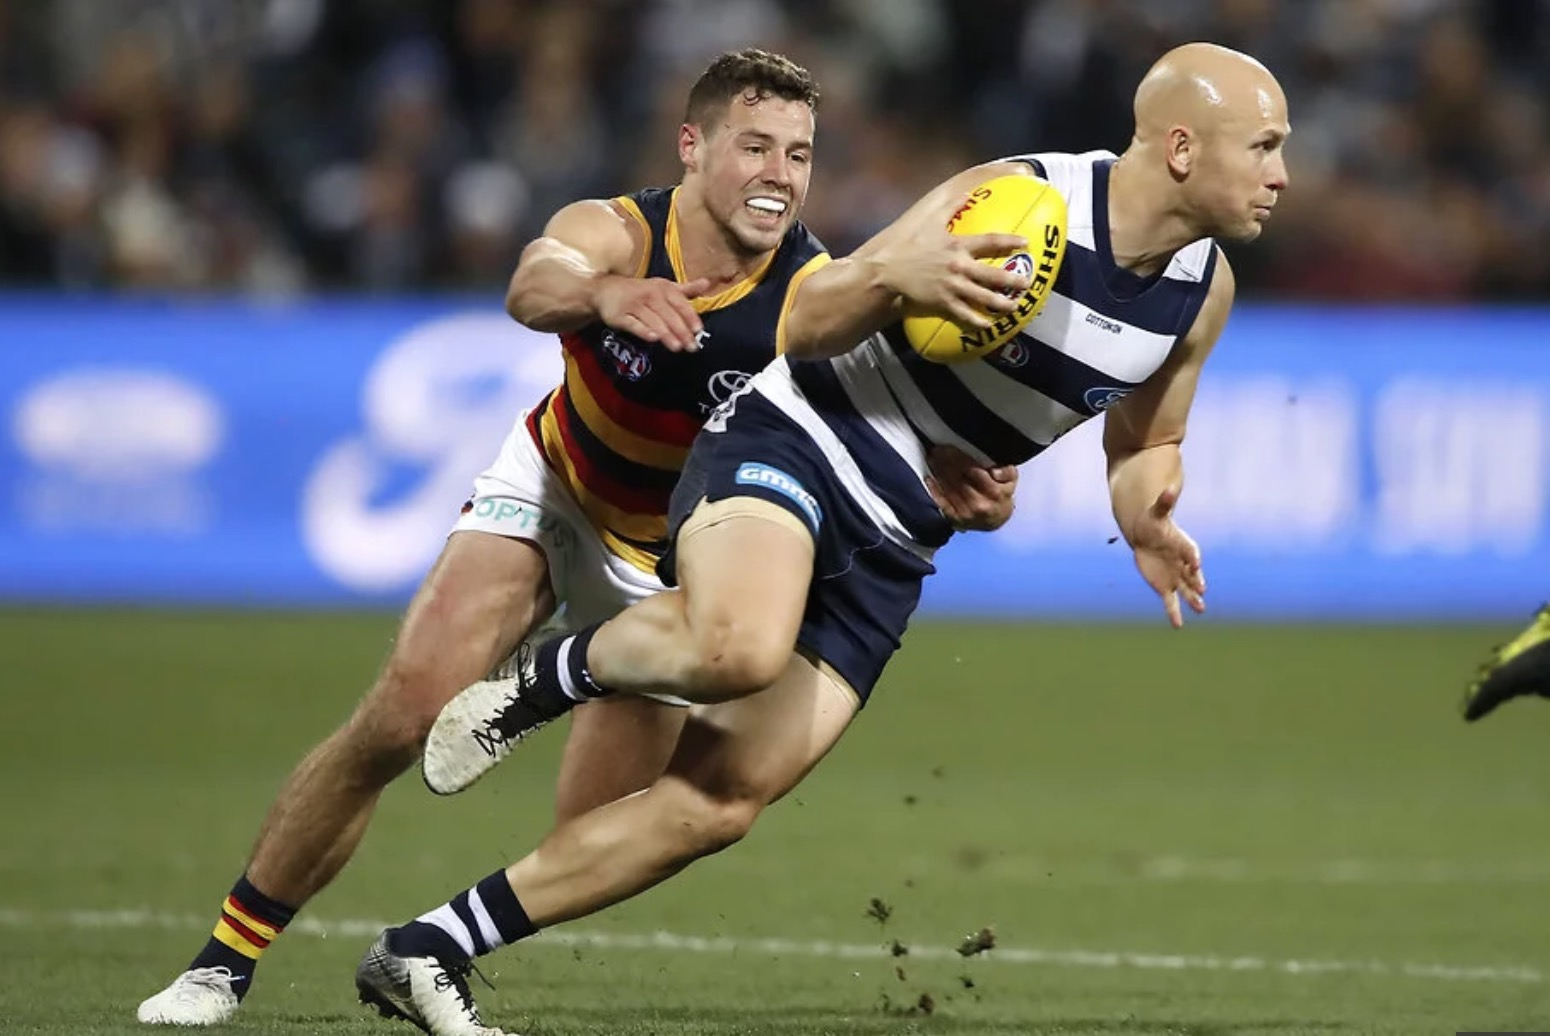 The highest rating fixture on the weekend was the Geelong v Adelaide clash on Friday night  image - Geelong Advertiser